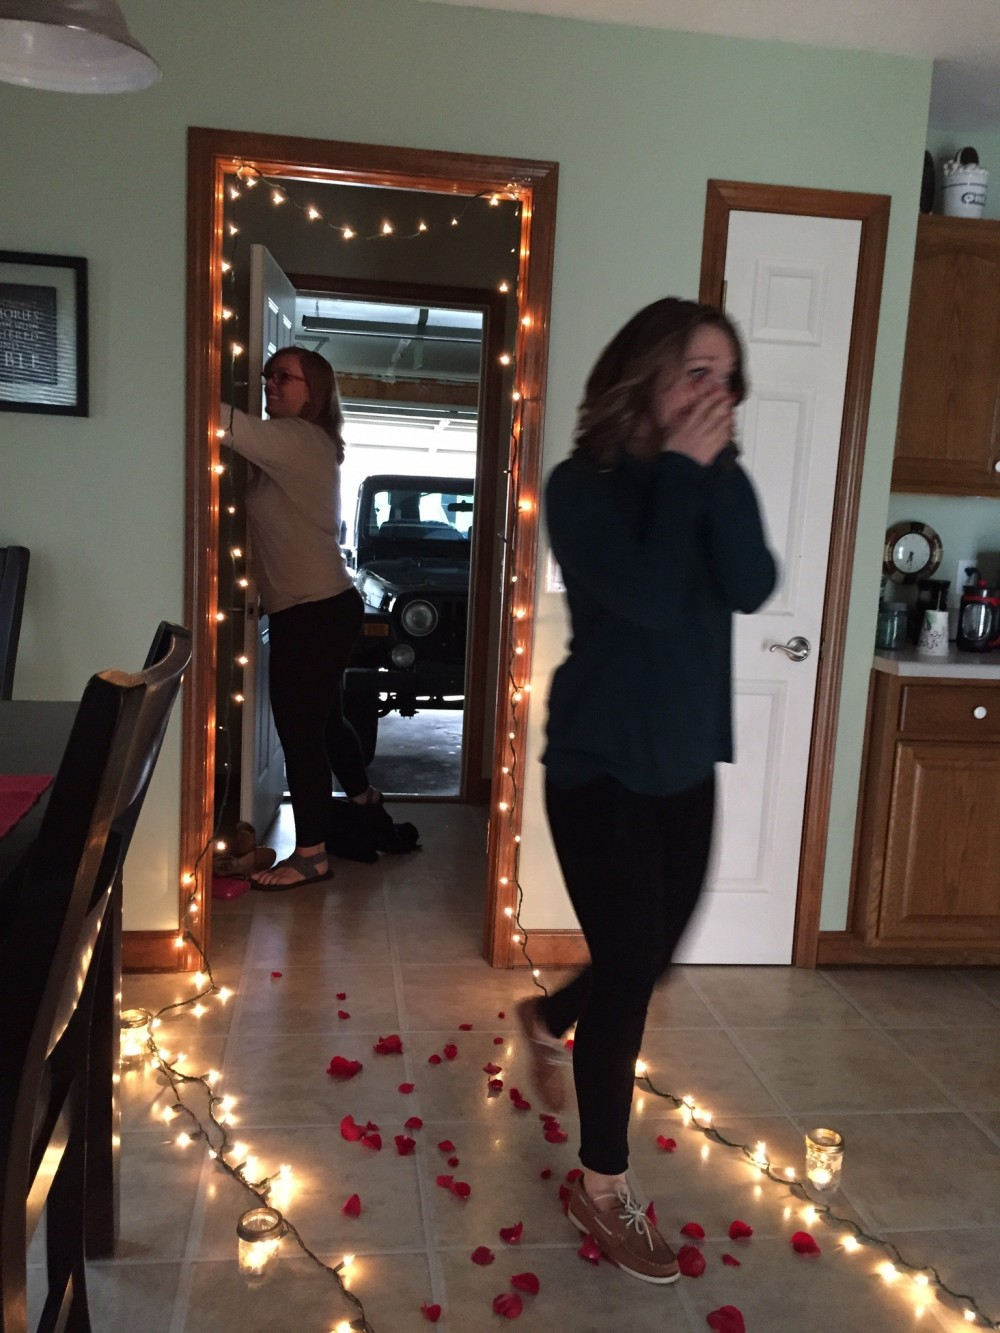 Image 2 of Lauren and Connor's Sweet Back Porch Proposal